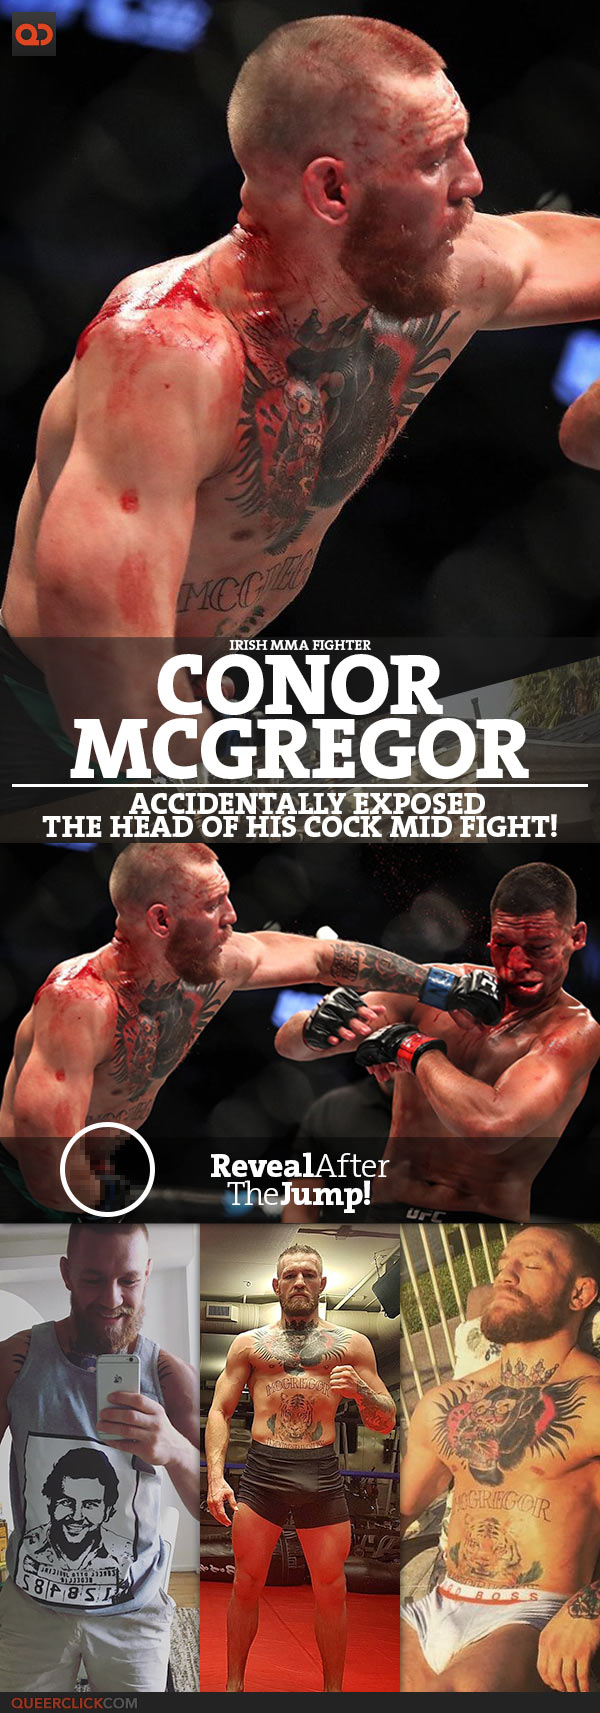 Conor McGregor Accidentally Exposed The Head Of His Cock Mid Fight!